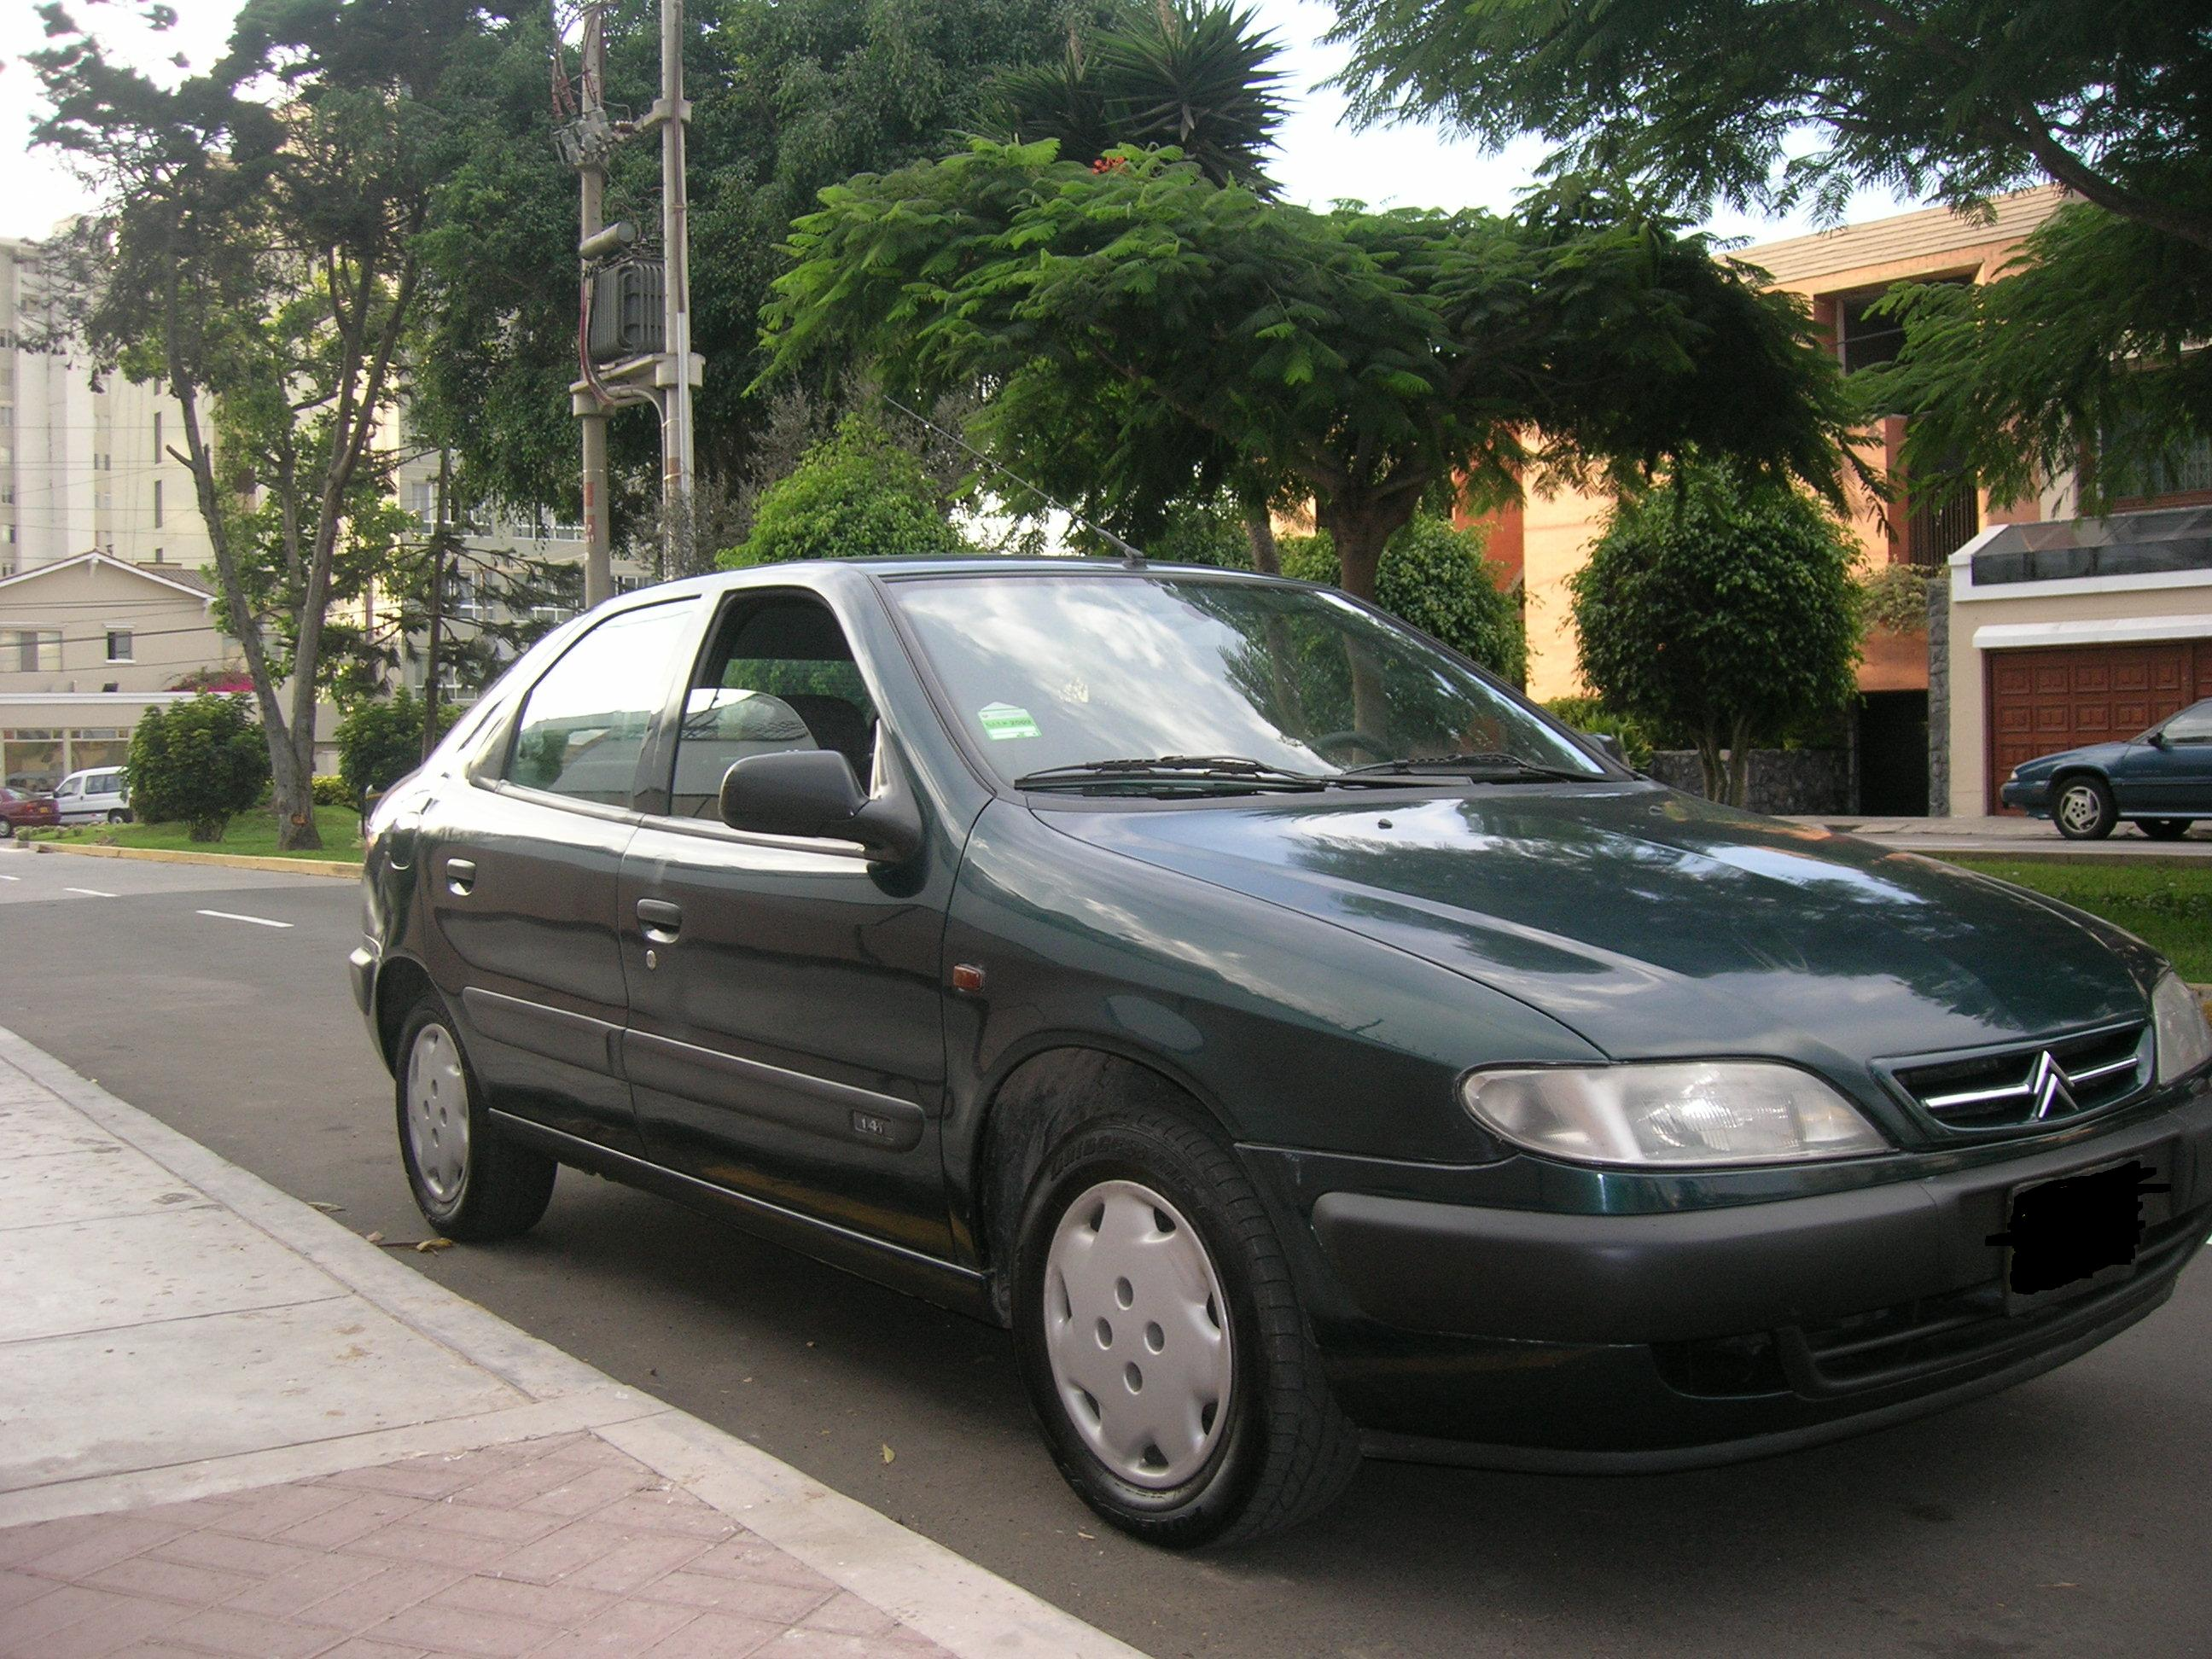 1998 citroen xsara photos informations articles. Black Bedroom Furniture Sets. Home Design Ideas